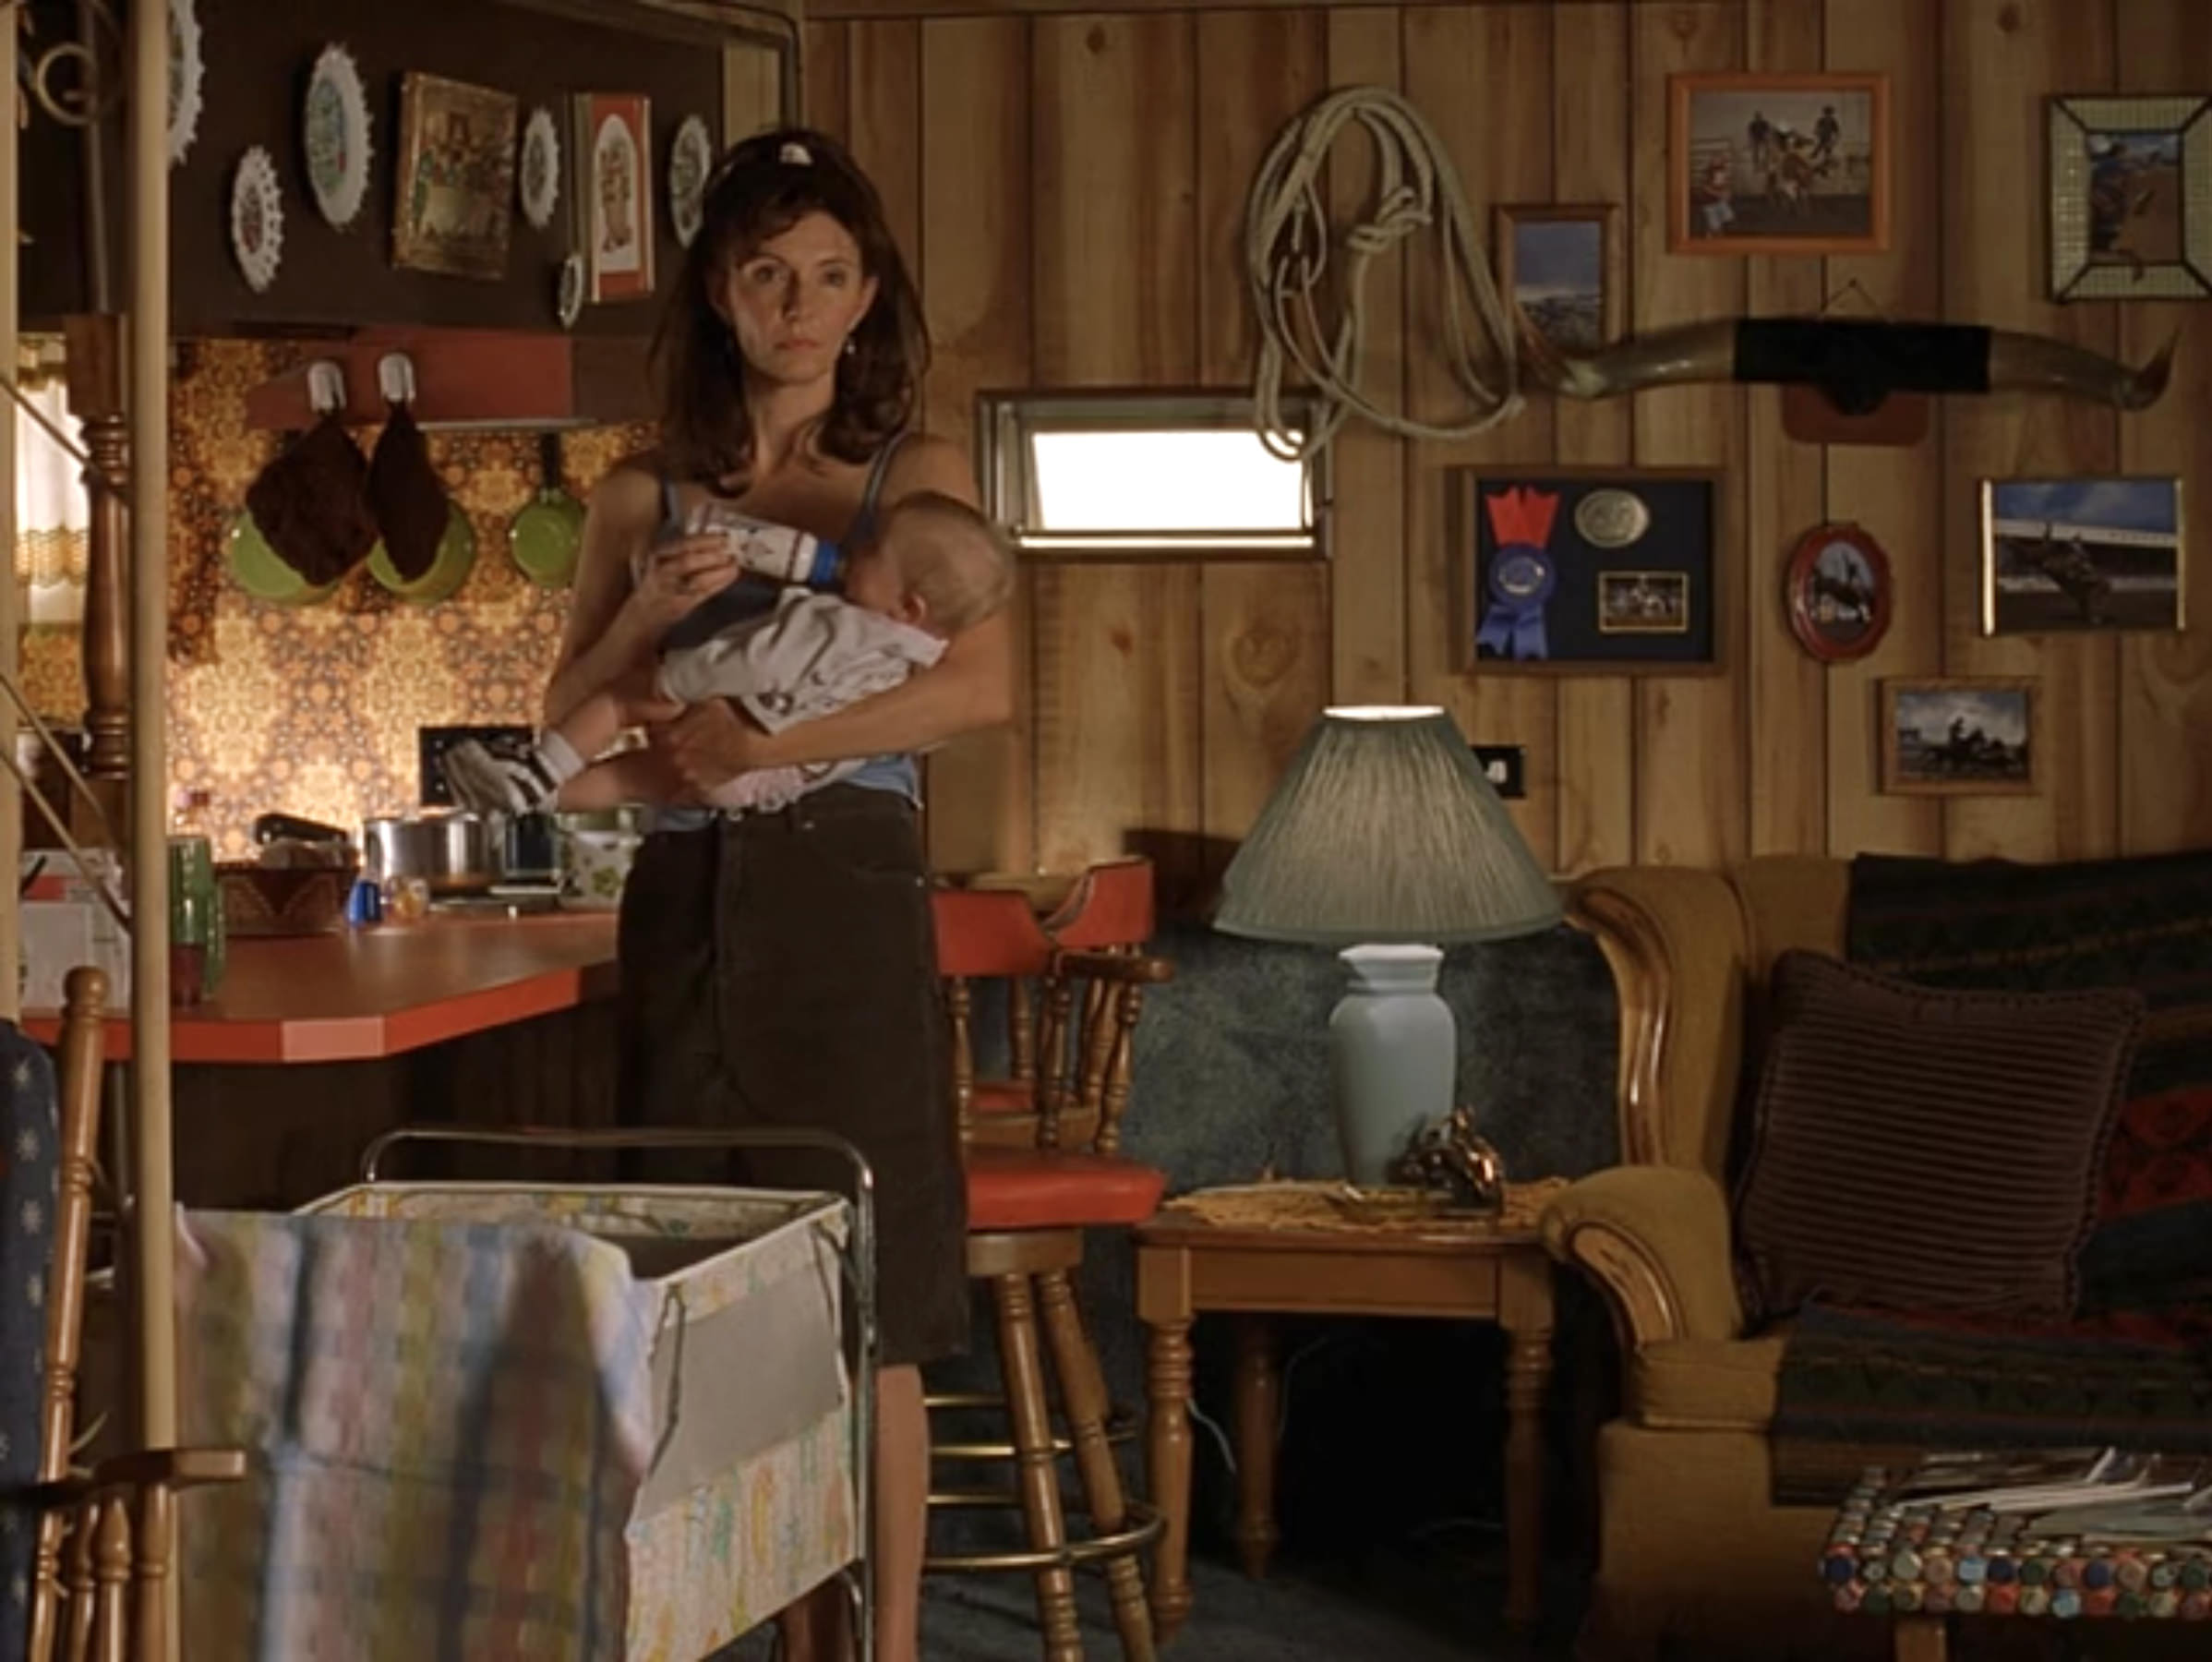 Estelle (Mary Steenburgen) in the kitchen/living room of Sonny's (Matthew Modine) trailer stage set.